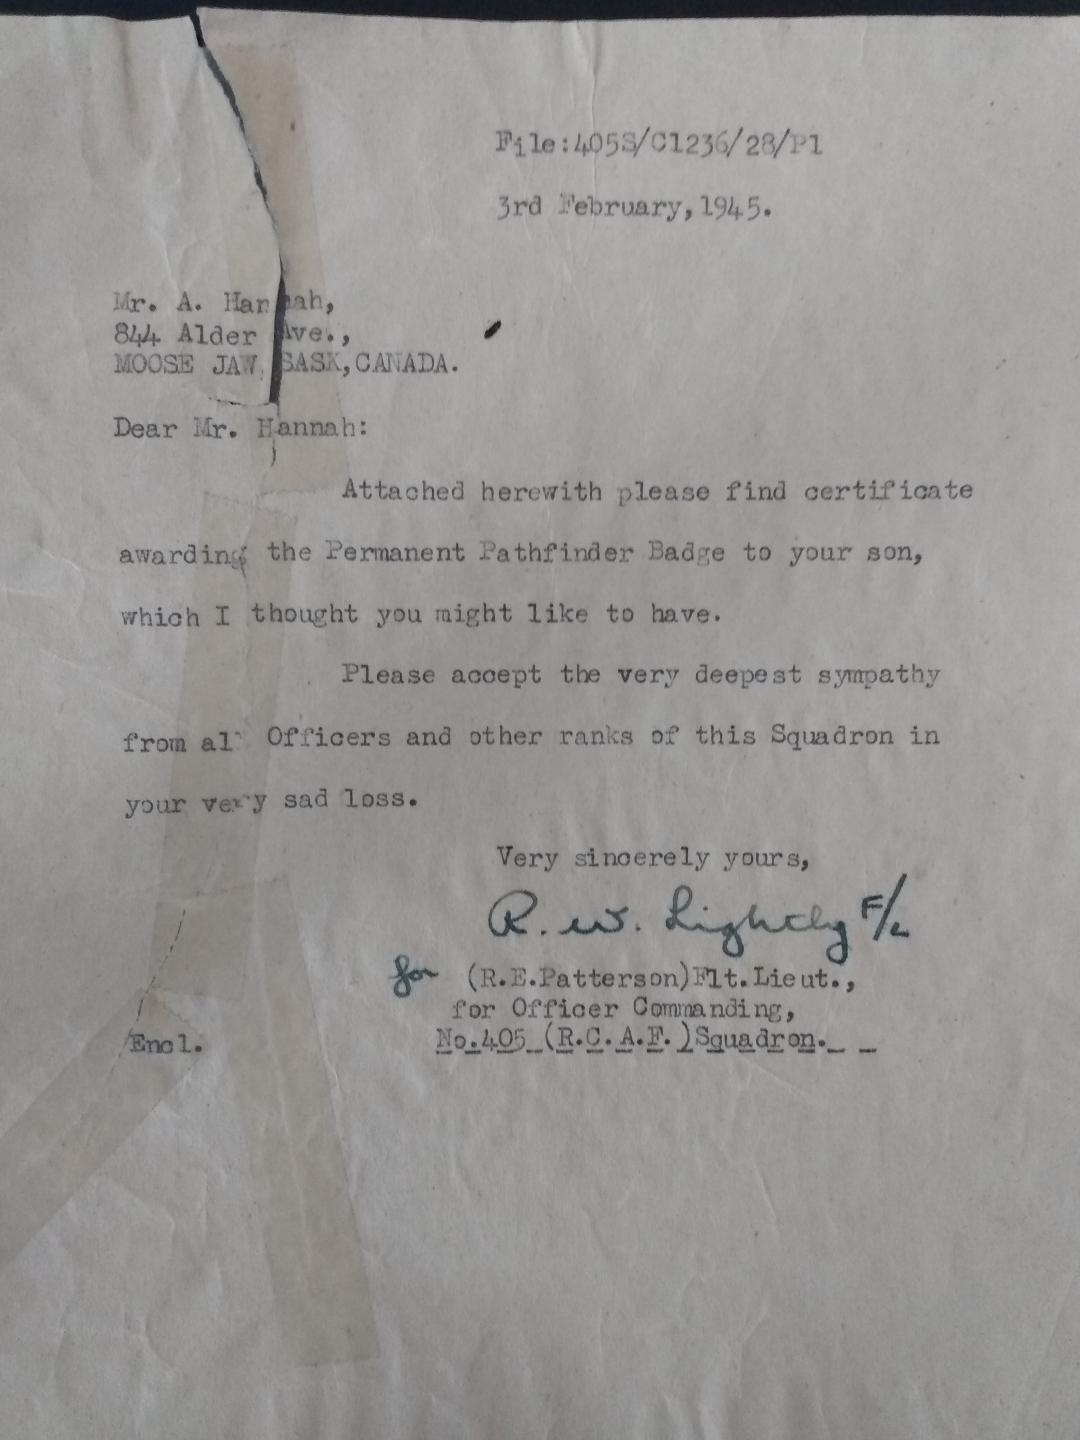 Letter– Letter to Harold Hannah's father, concerning the permanent path finder certification.